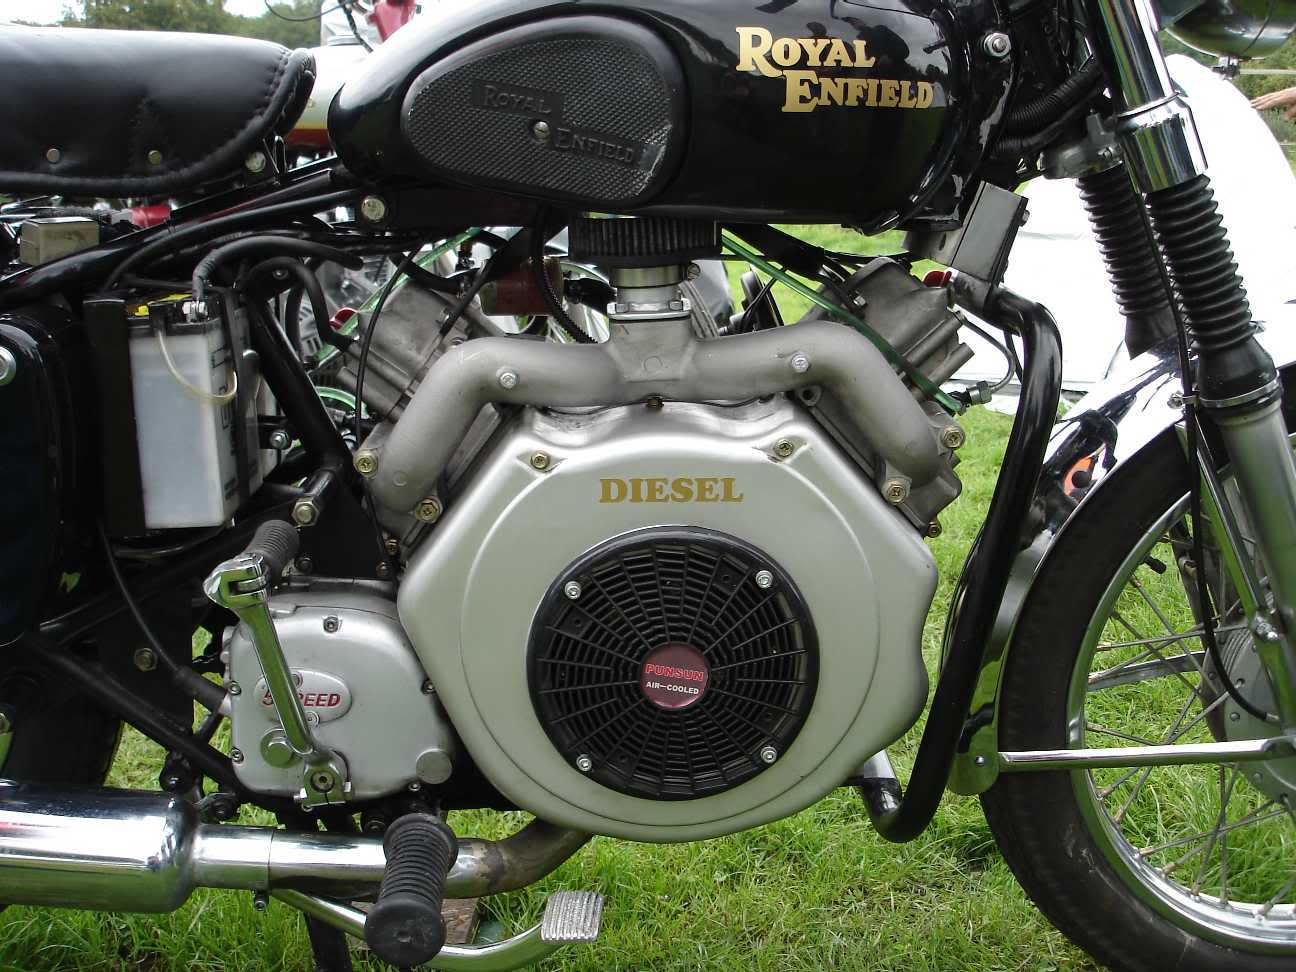 Royal Enfield Diesel 1997 images #122872